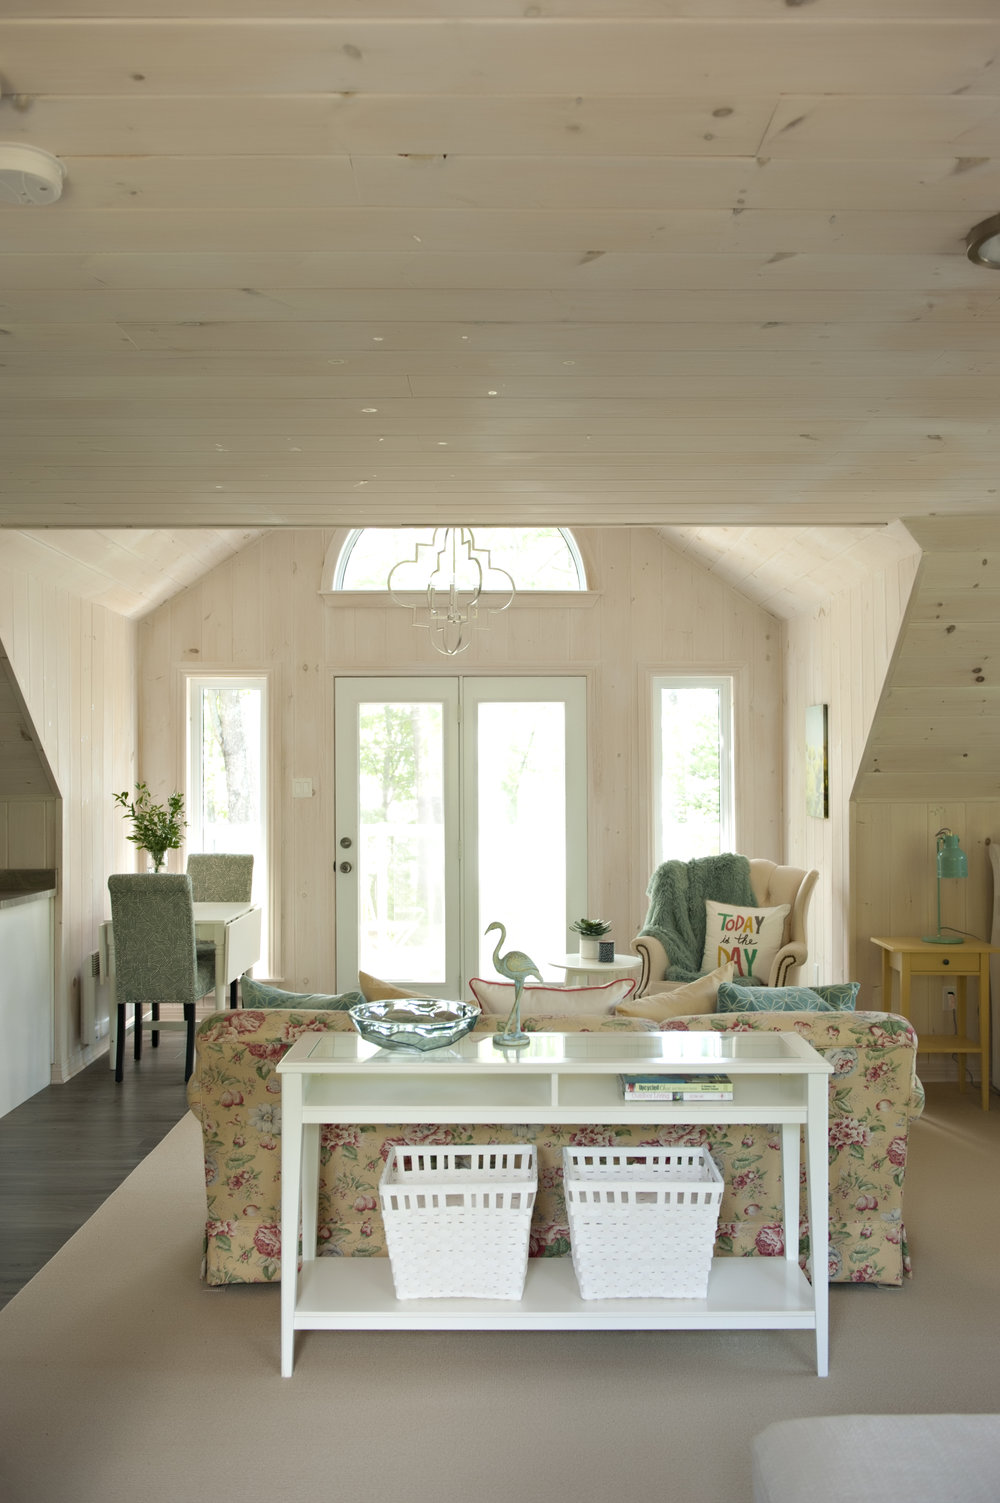 Candace-Plotz-Design-Beach-House-1-Project-Seating-Area-French-Doors